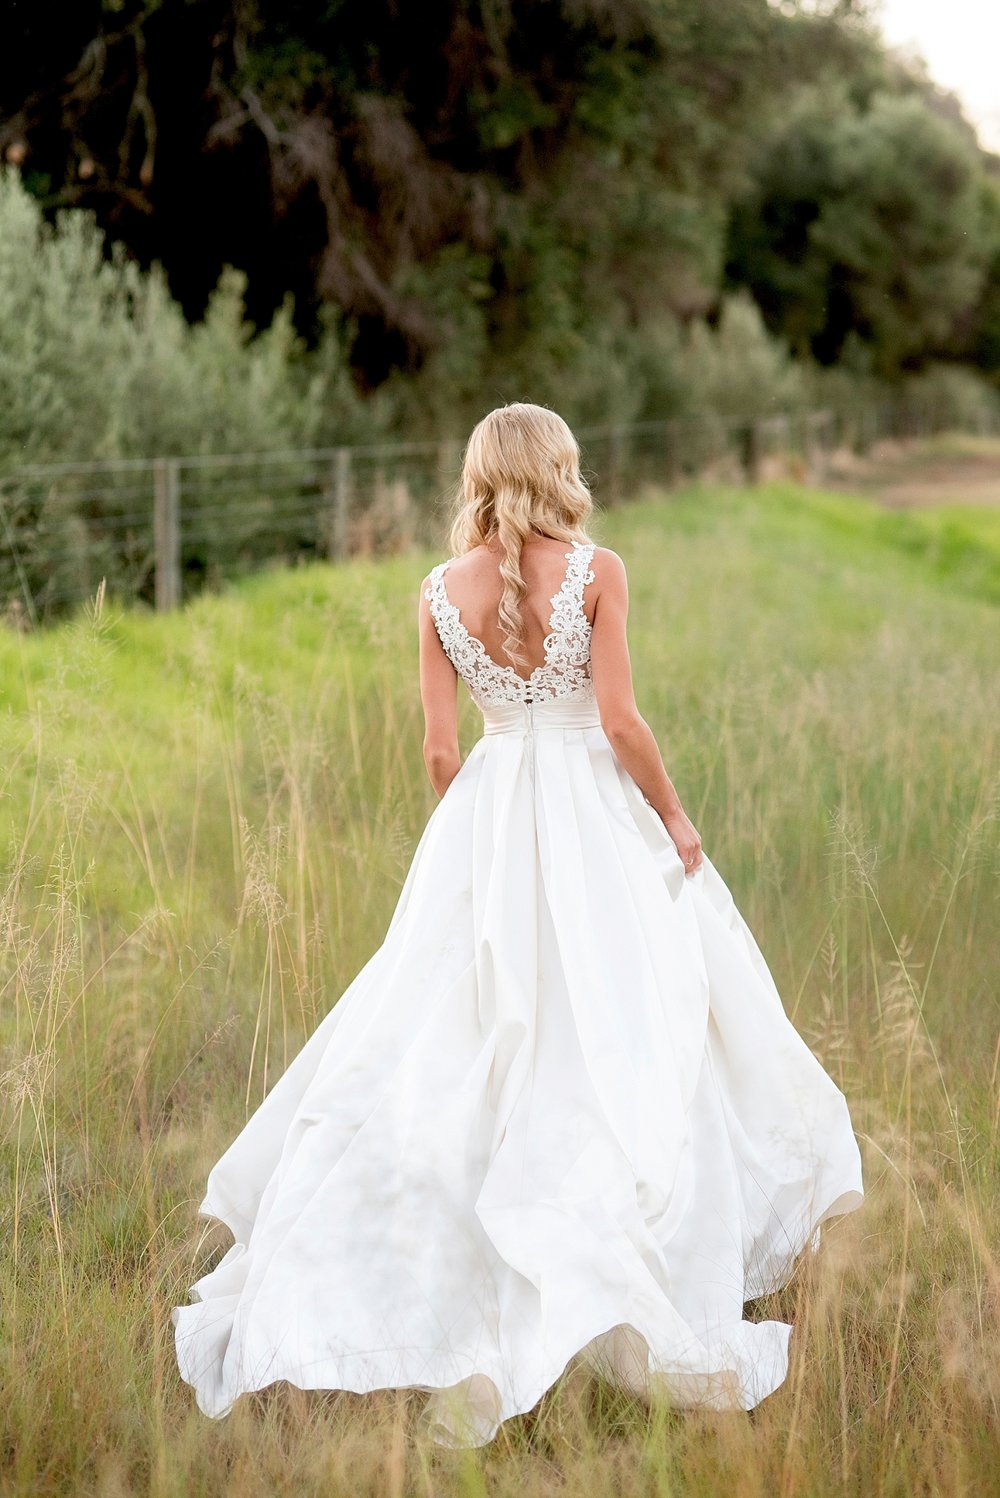 23_houghtons winery wedding perth.JPG